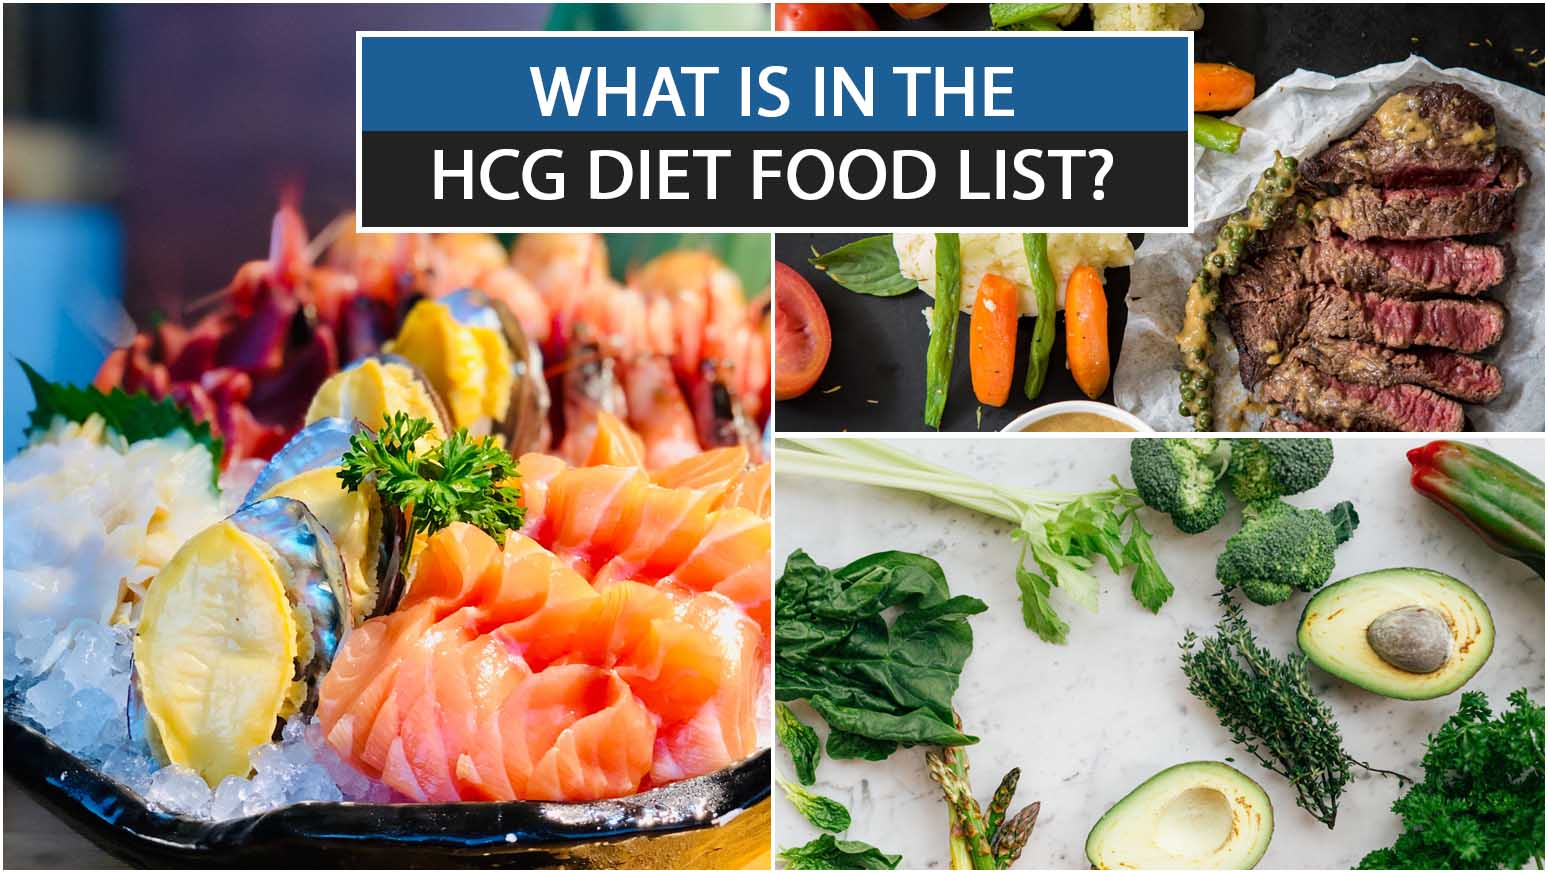 WHAT IS IN THE HCG DIET FOOD LIST?